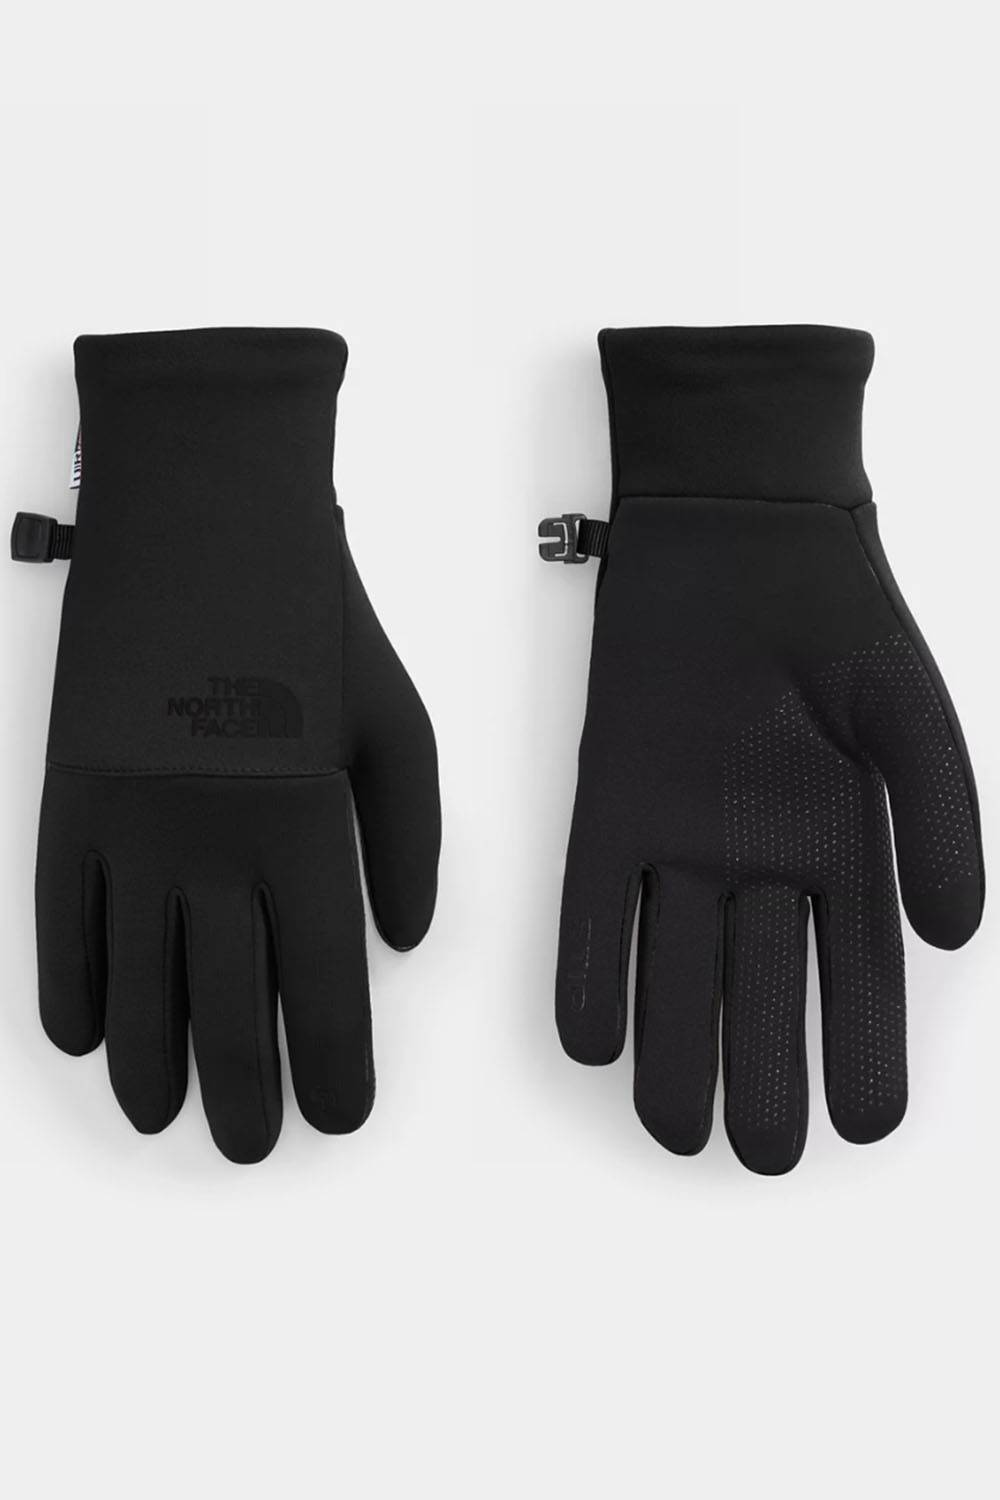 north face vegan leather gloves